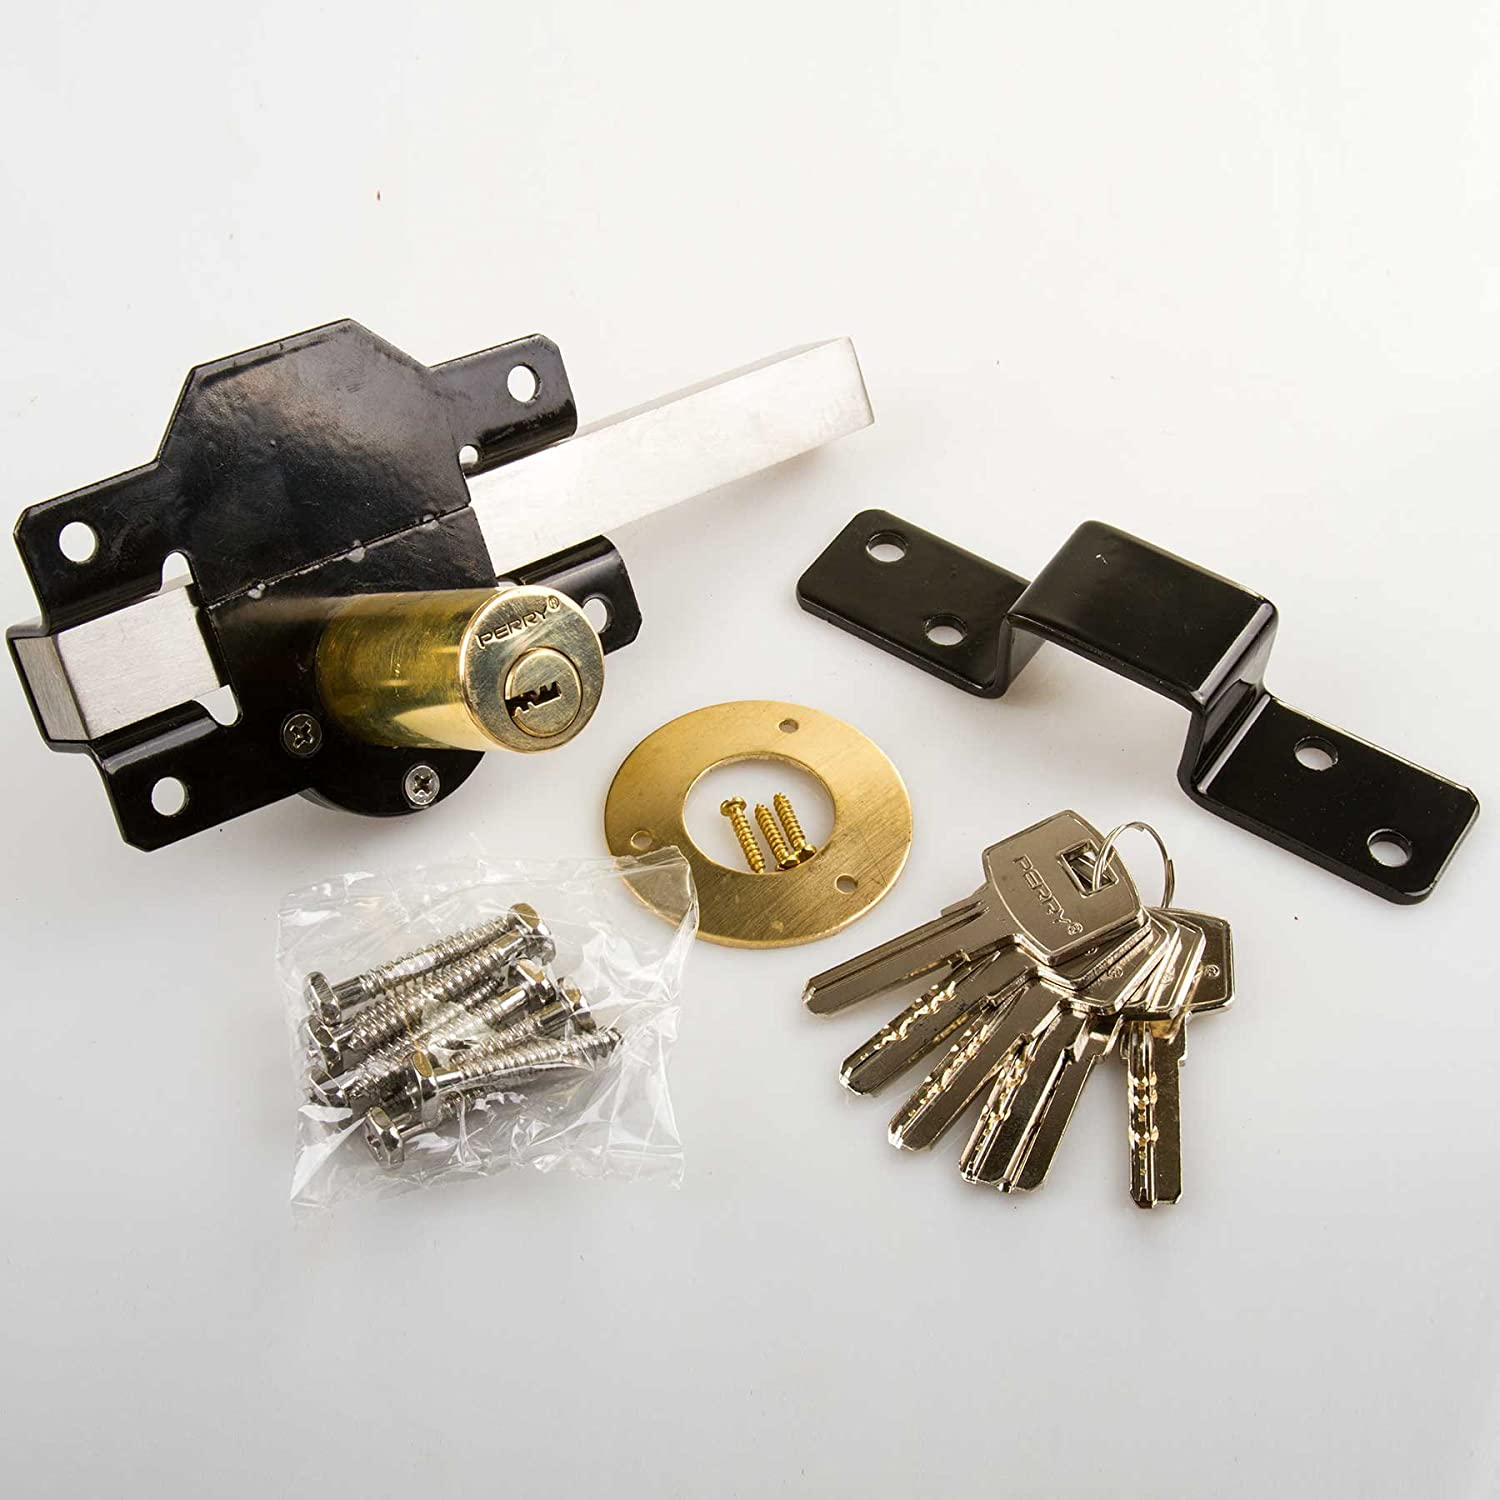 doors nuts sheds locks hasp washers the colin frame securing is with inside secured helpful shed and